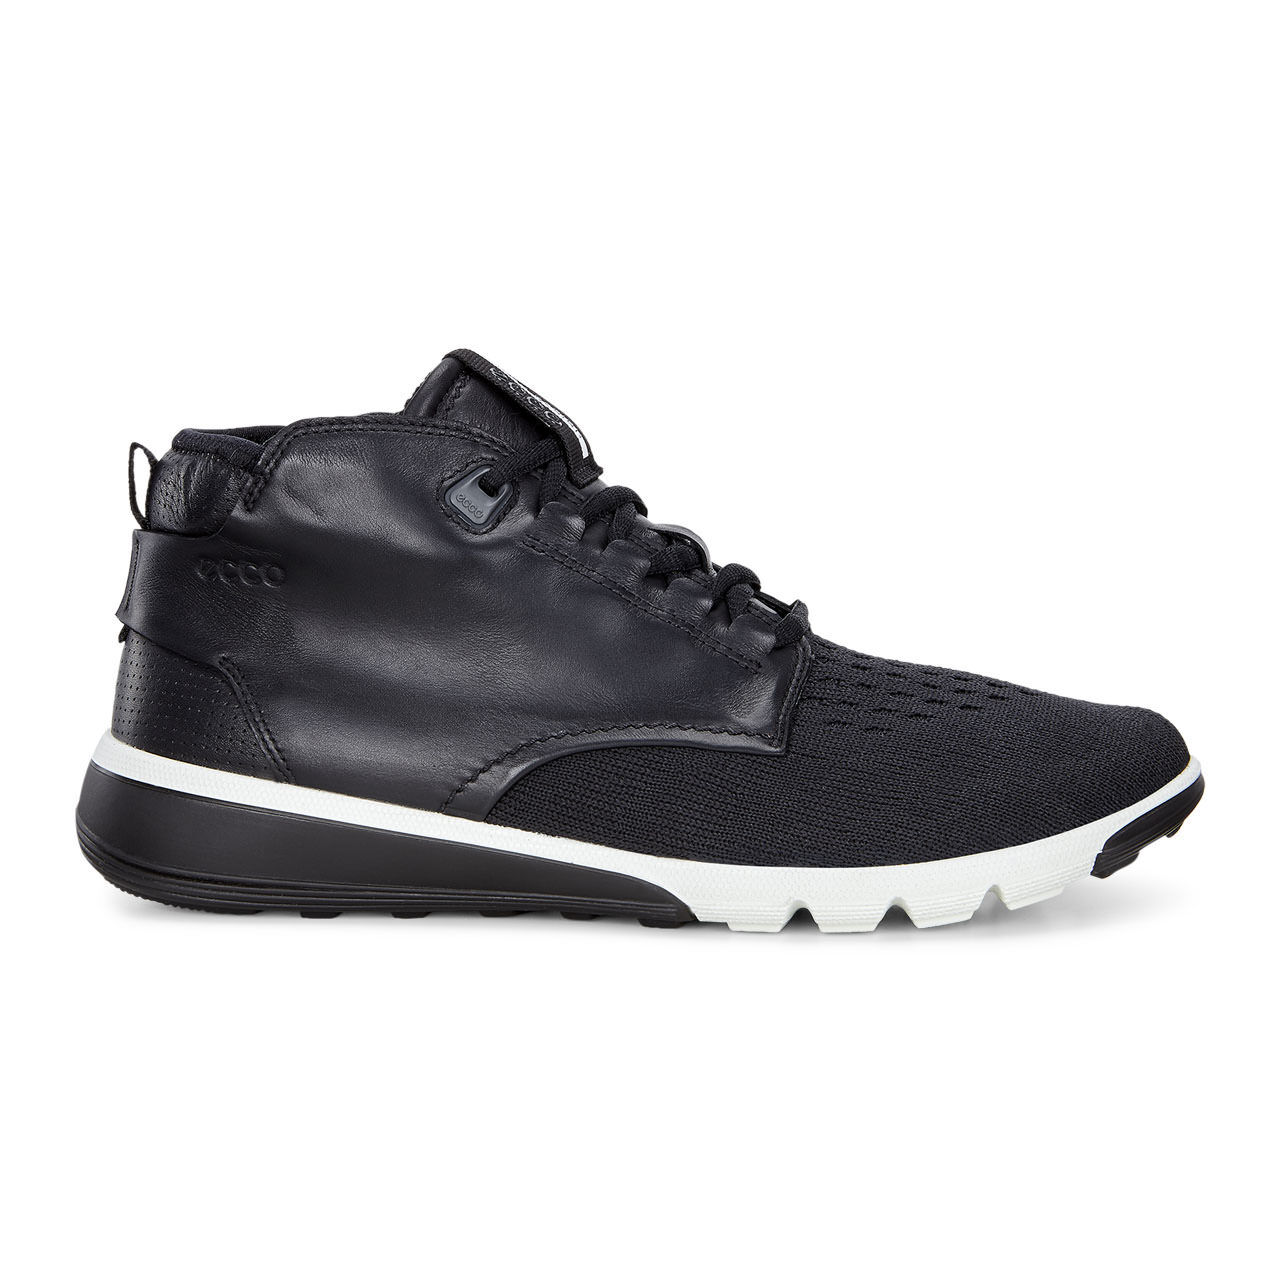 ... ECCO Mens Intrinsic 2 BootECCO Mens Intrinsic 2 Boot BLACK/BLACK (51052)  ...